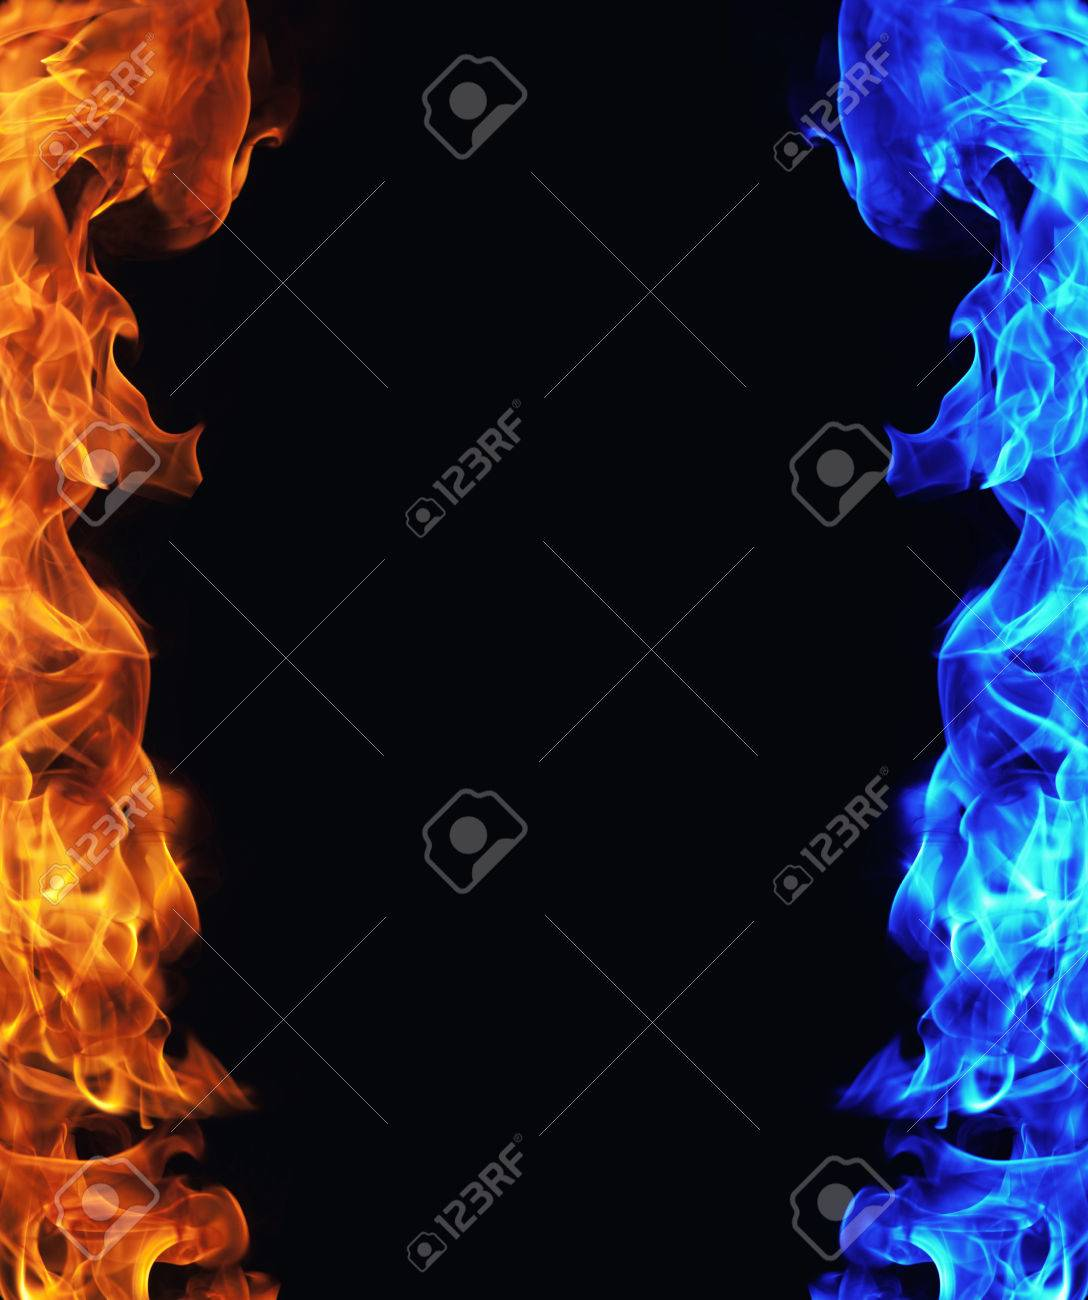 1088x1300 - Red and Blue Fire 32